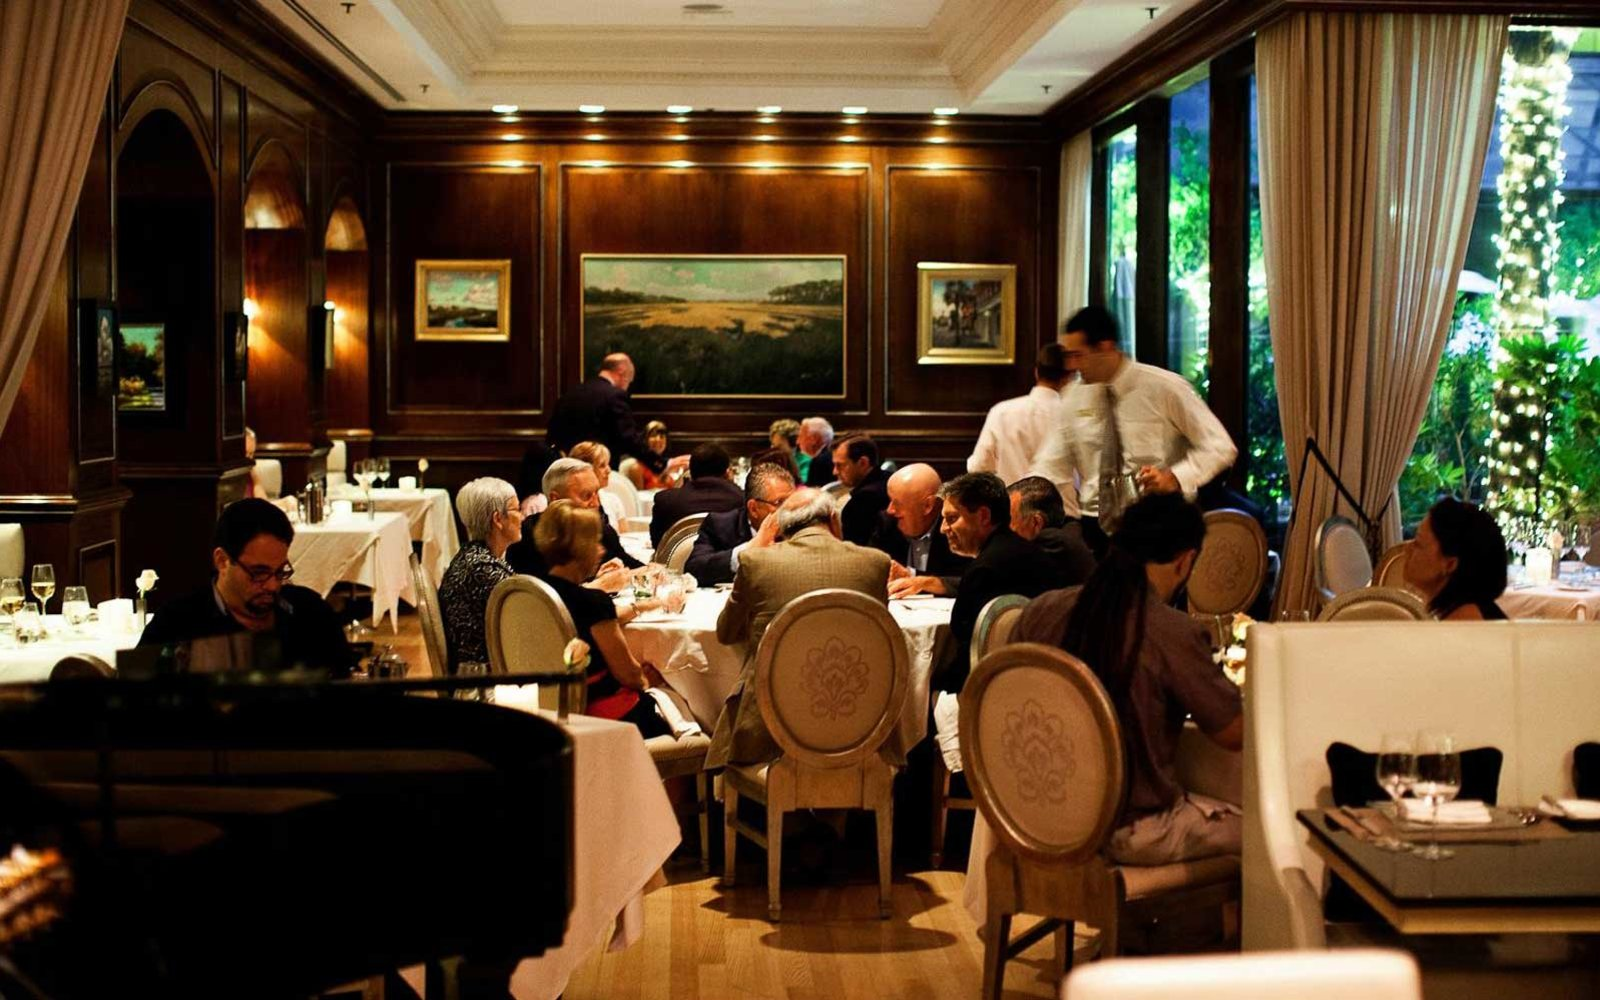 Charleston Grill, The Most Romantic Restaurant in the U.S.